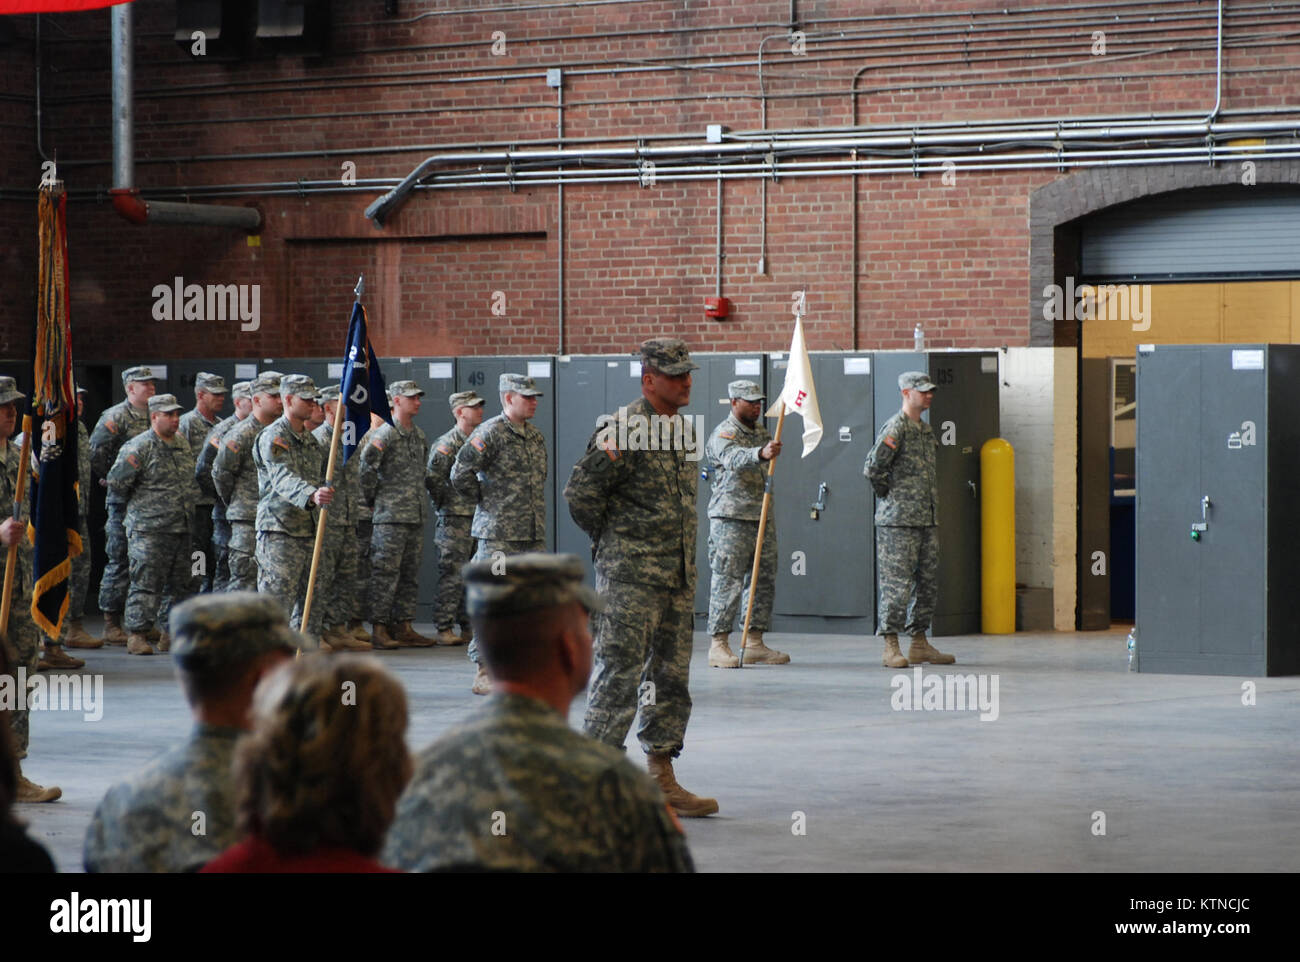 UTICA, N.Y. –New York Army National Guard Soldiers of the 2nd Battalion, 108th Infantry prepare to farewell their Stock Photo